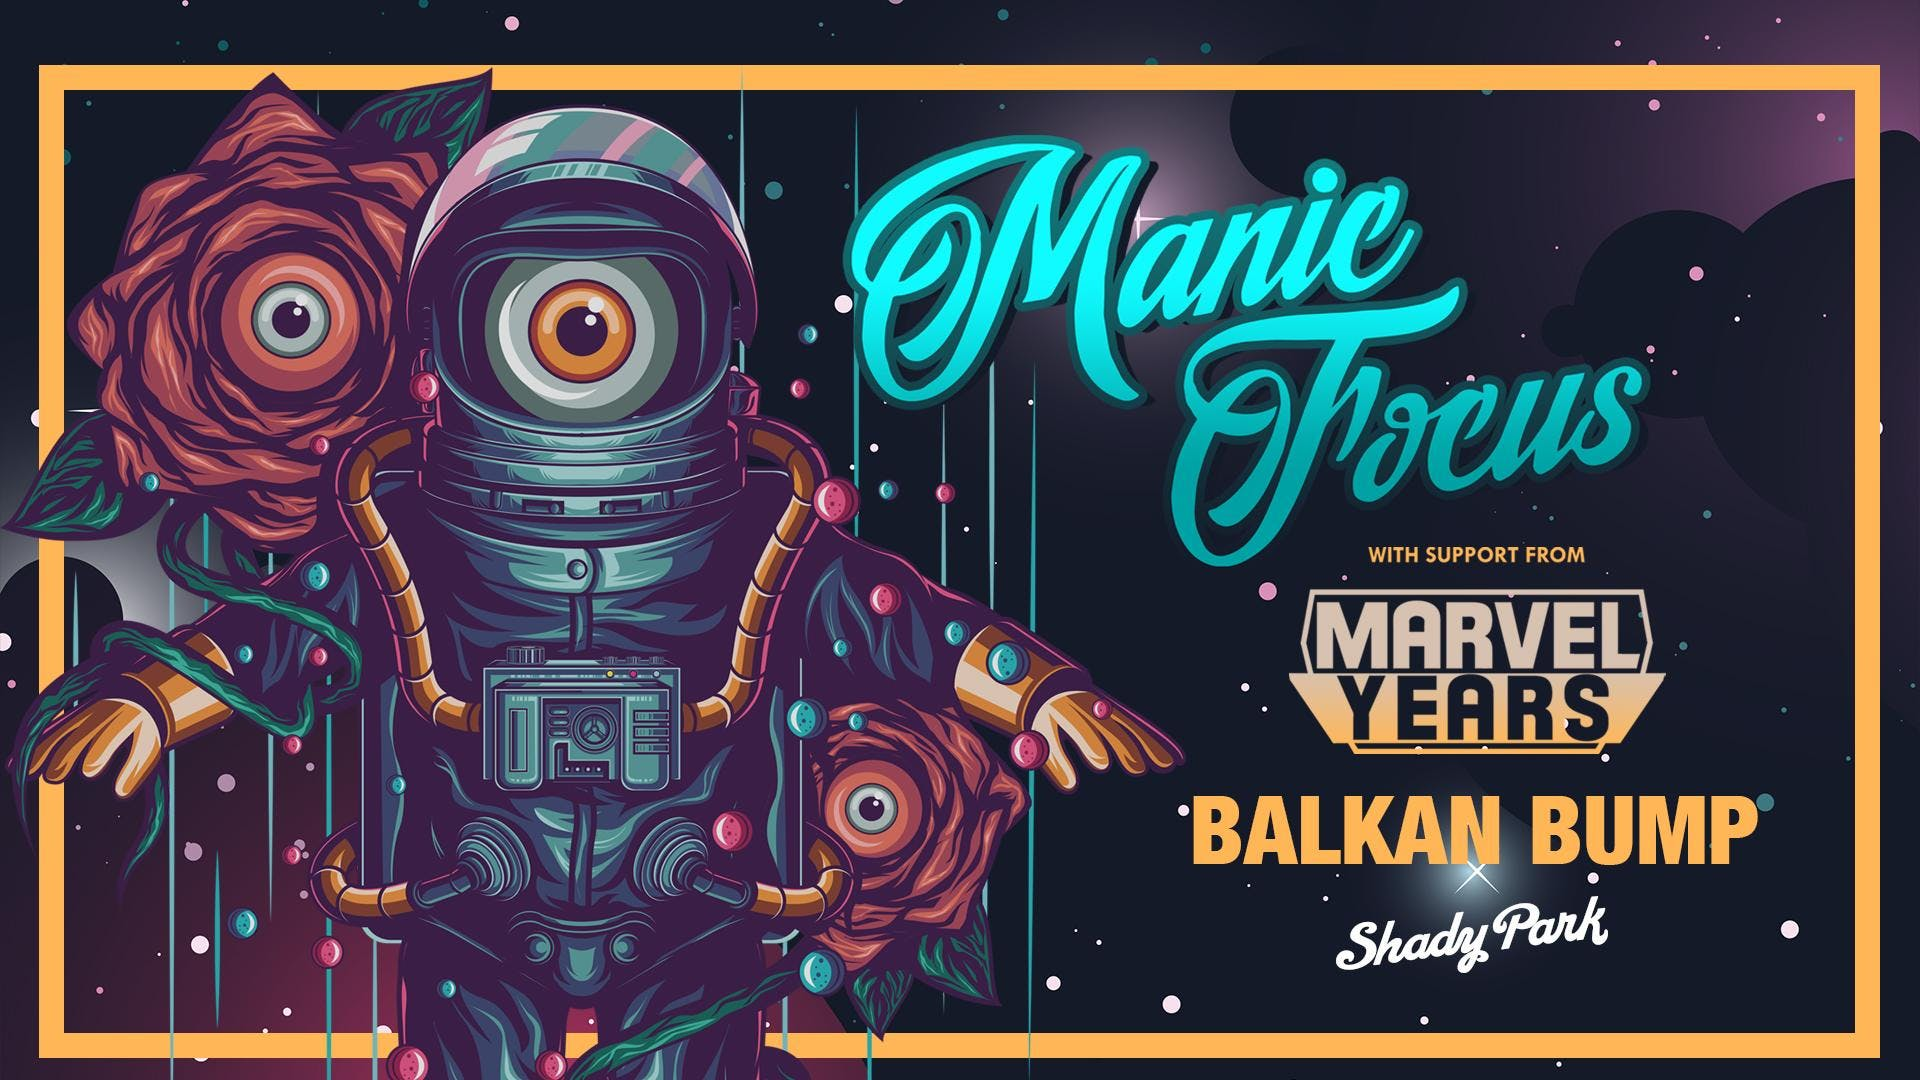 Manic Focus w/ Marvel Years + Balkan Bump at Shady Park